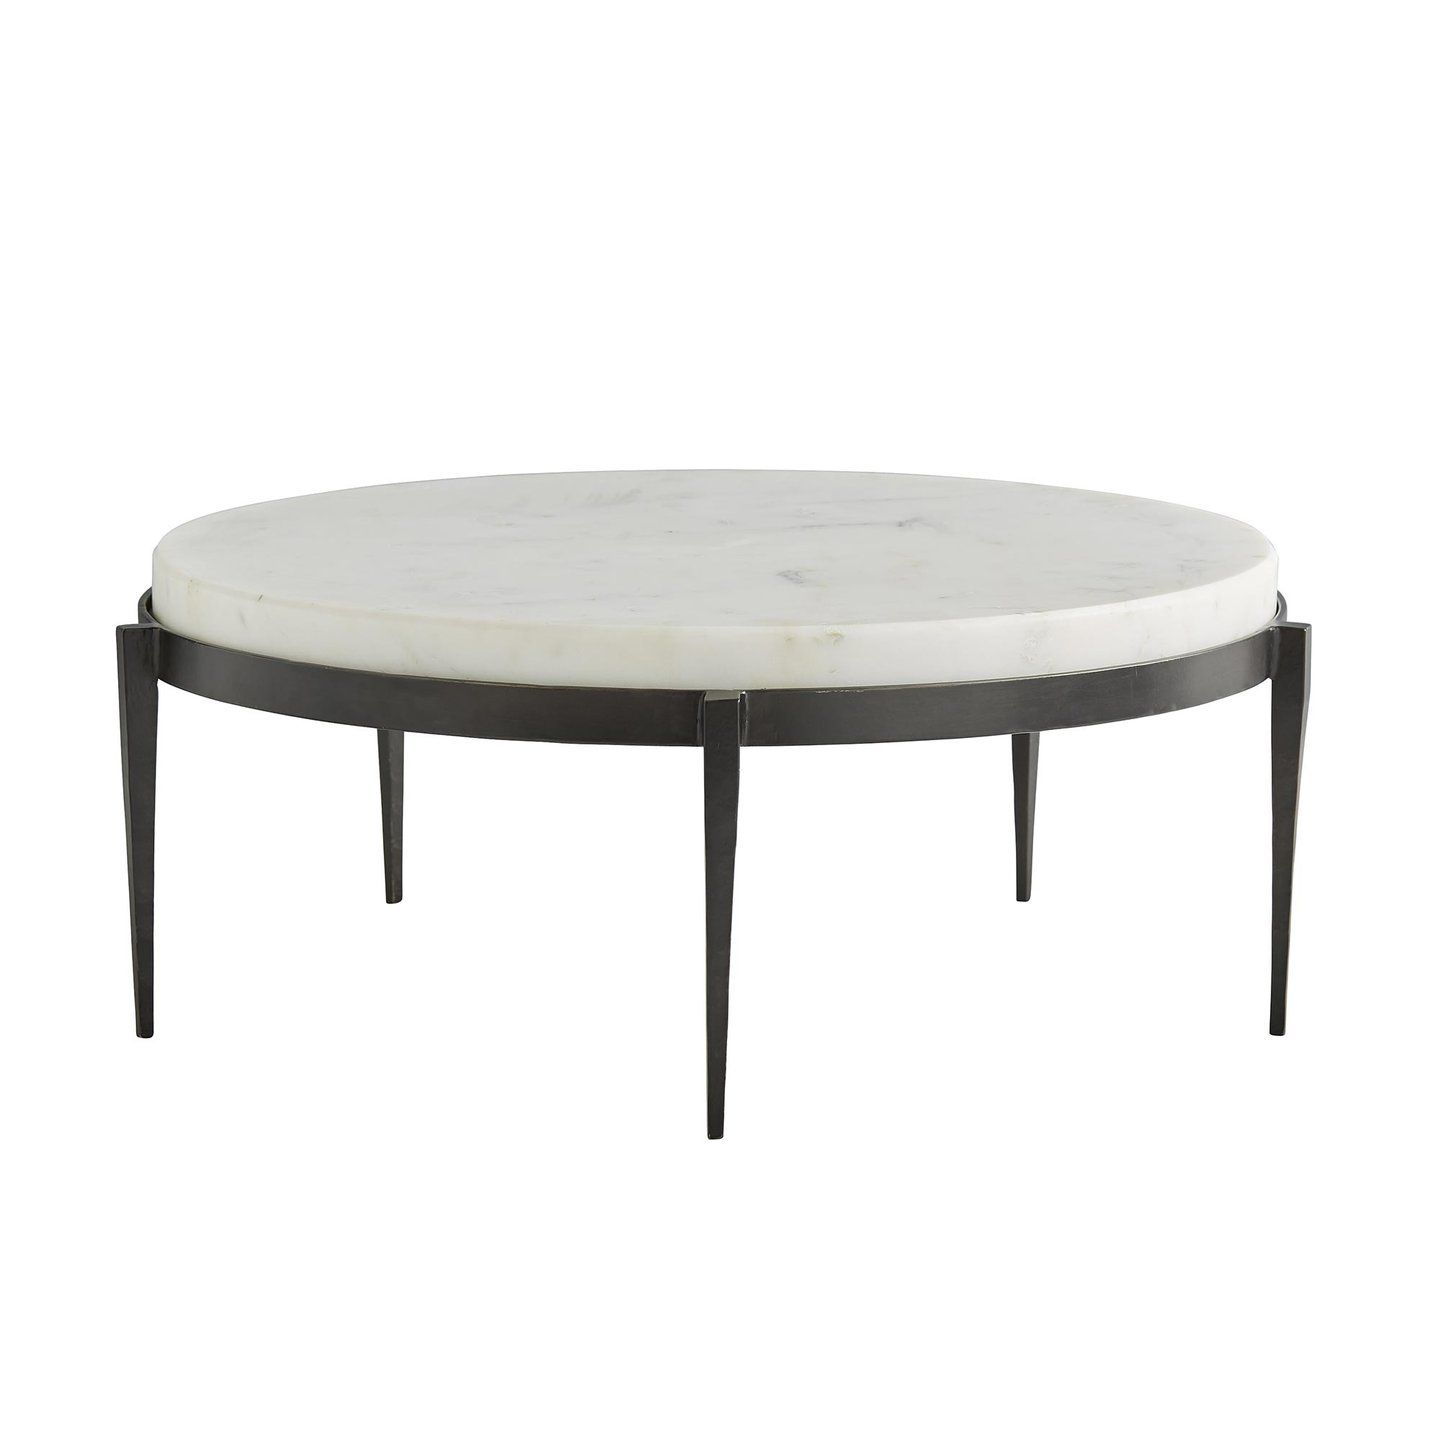 Https Claytongrayhome Com Collections All Products Arteriors Home Kelsie Cocktail Marble Cocktail Table Round Coffee Table Modern Coffee Table White [ 1440 x 1440 Pixel ]